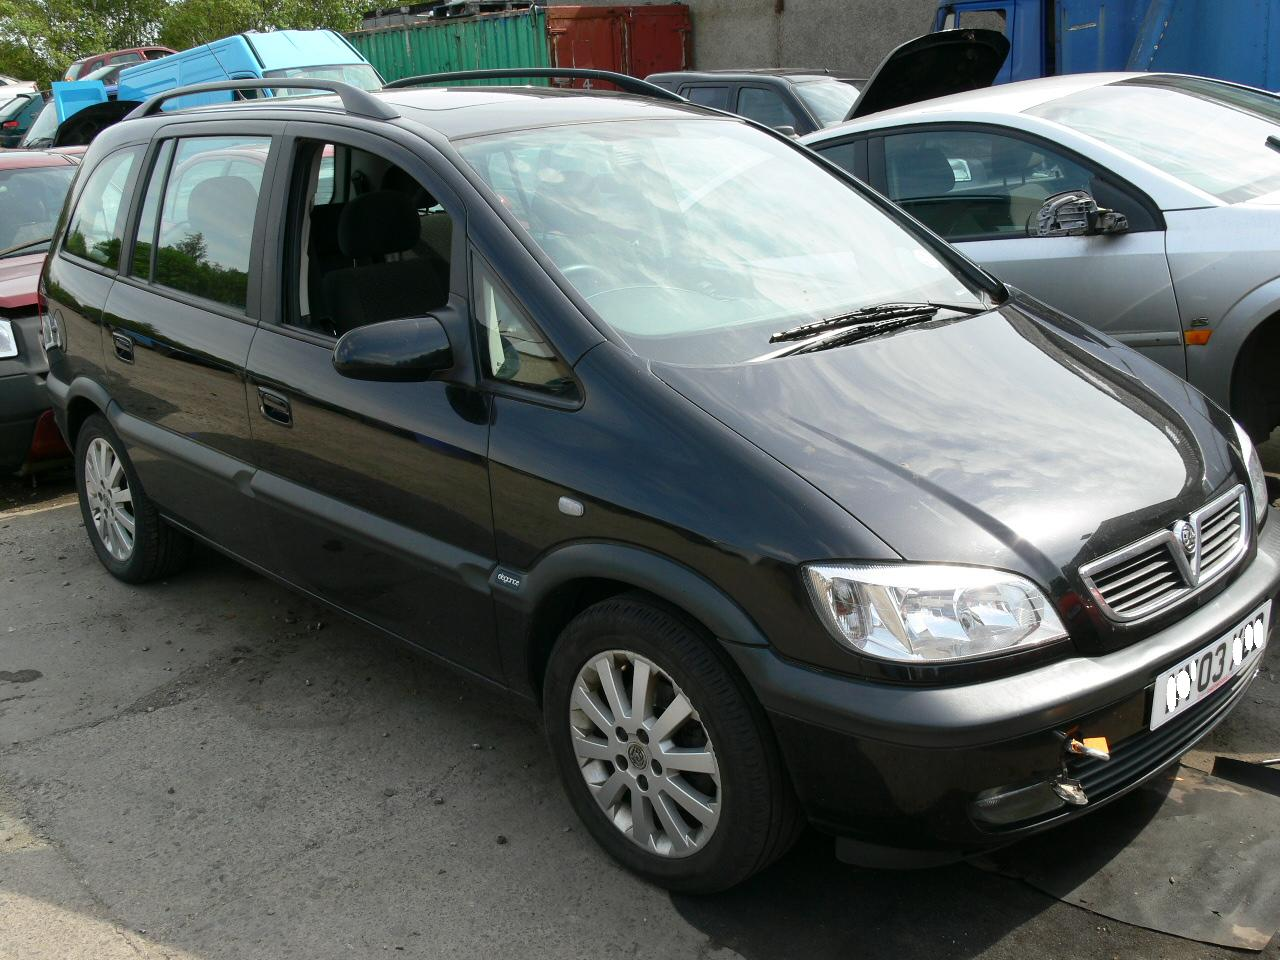 2003 vauxhall zafira photos informations articles. Black Bedroom Furniture Sets. Home Design Ideas